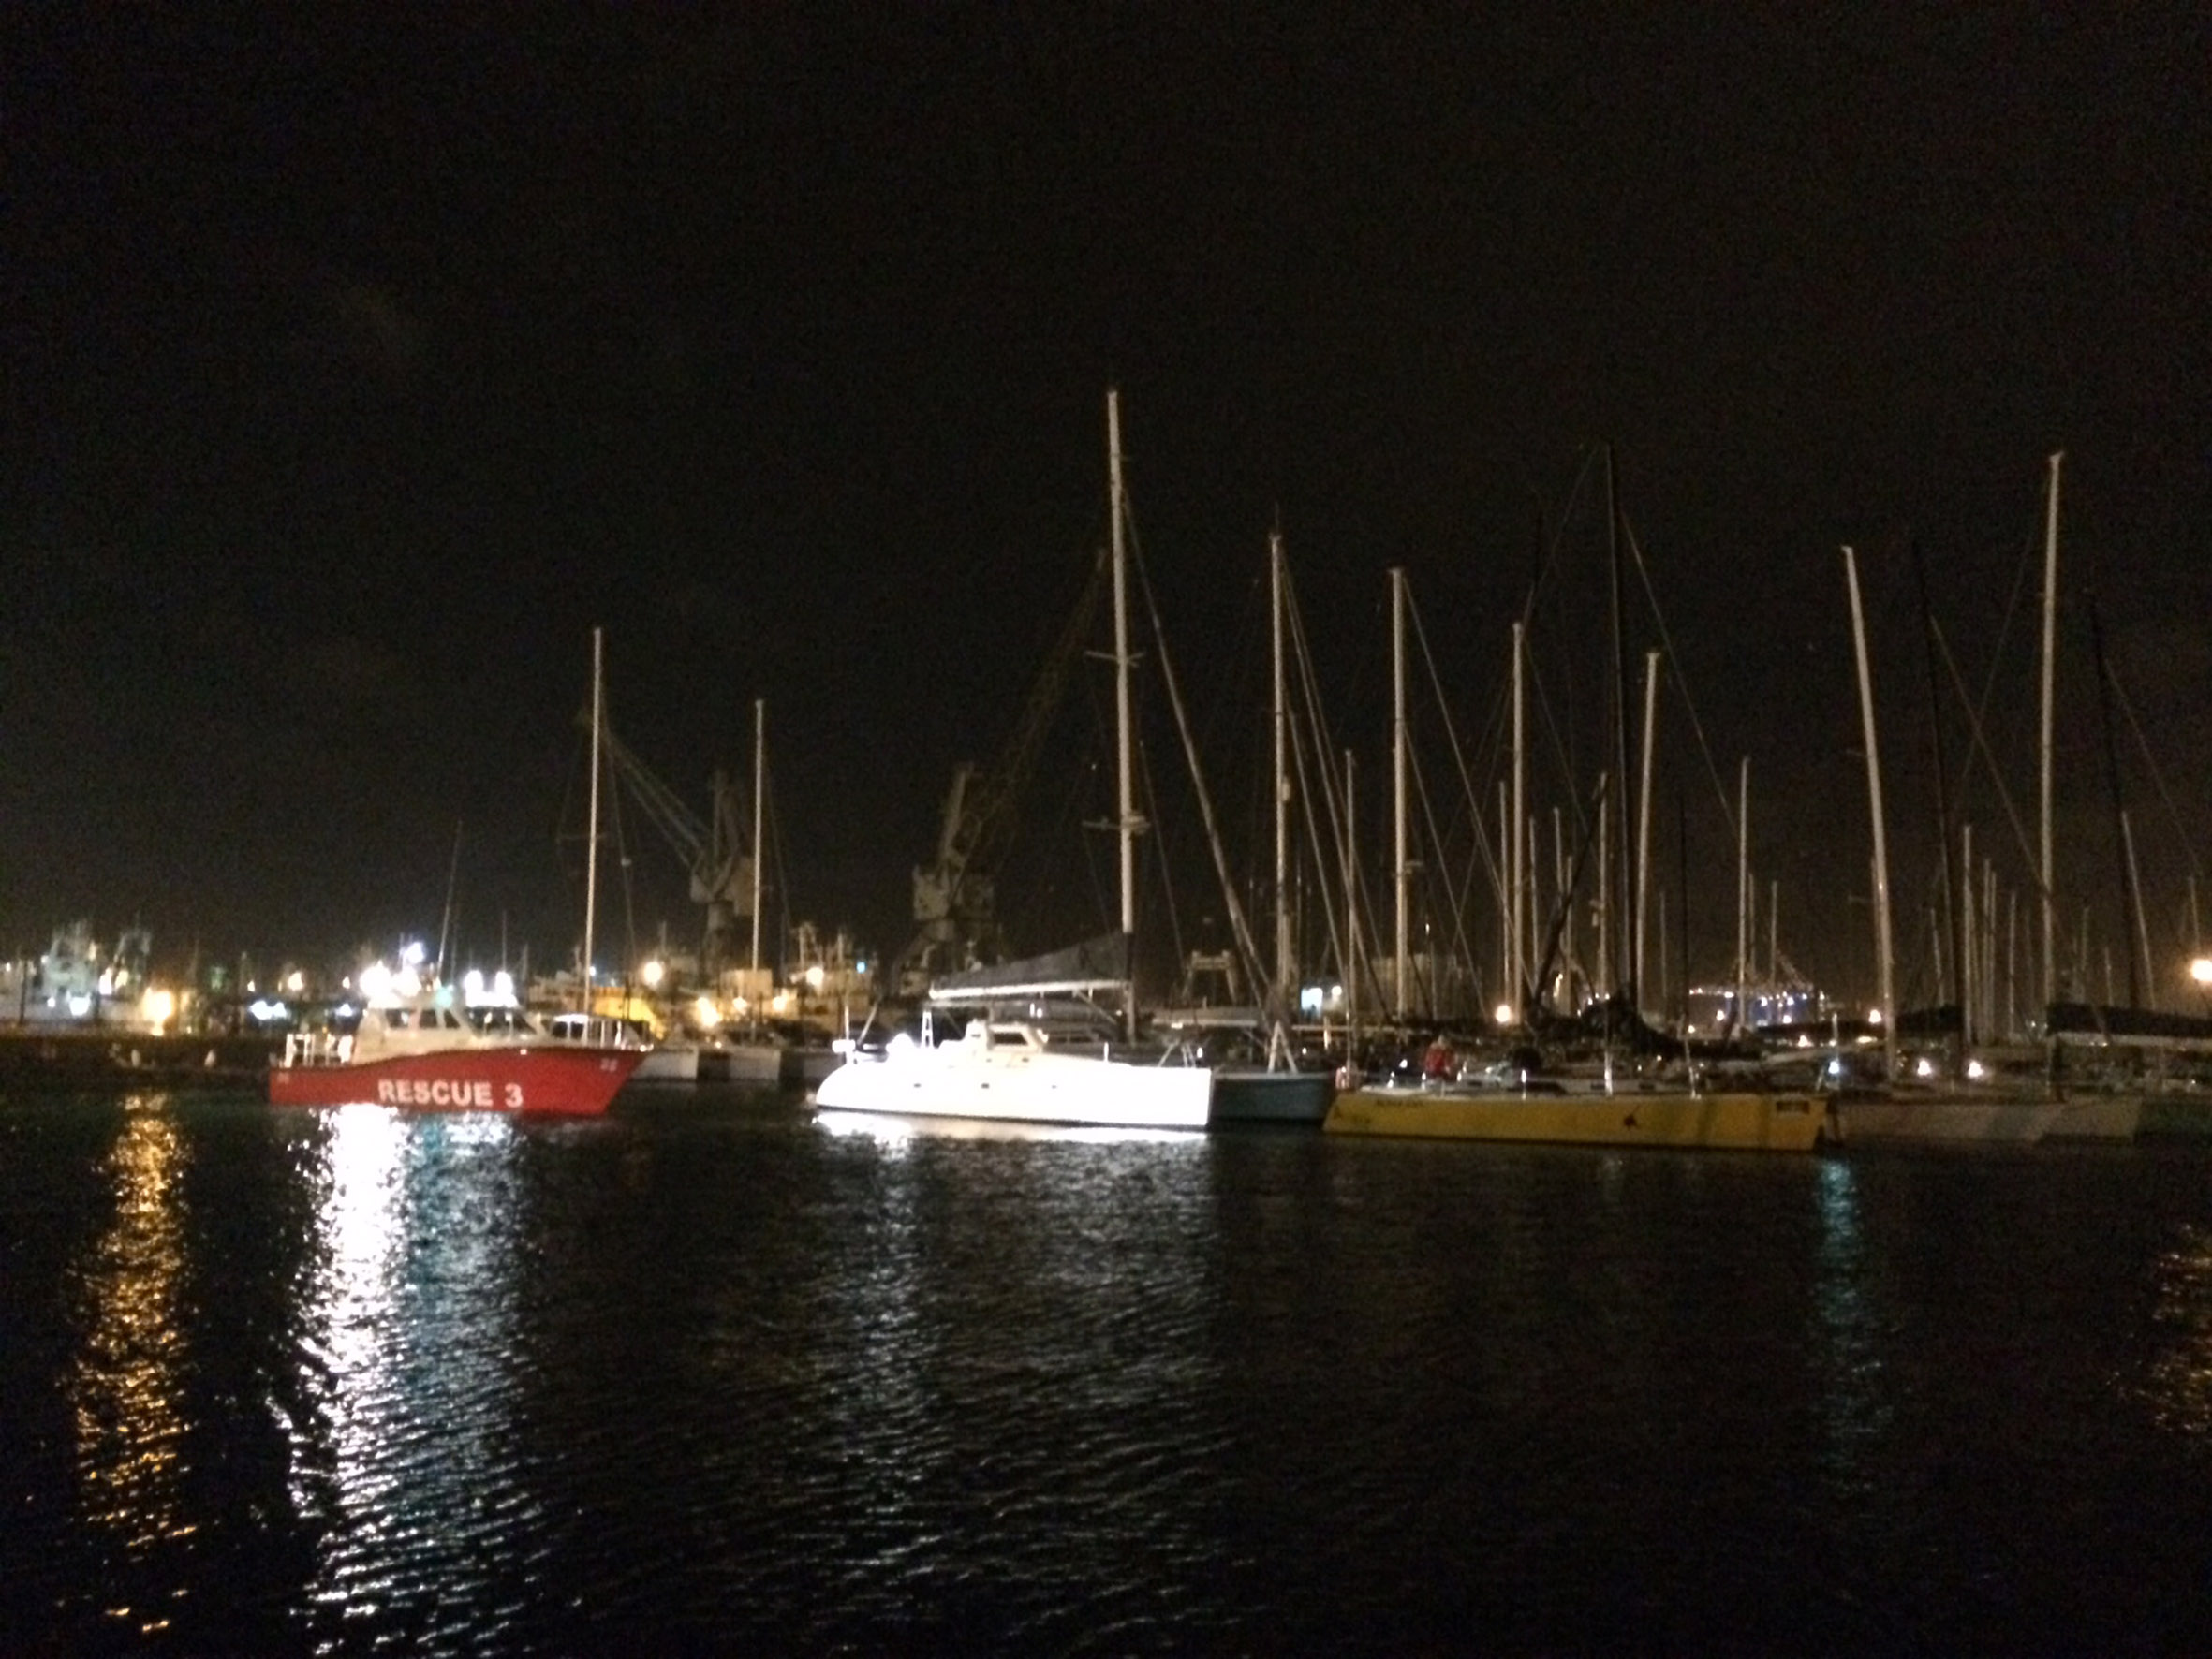 Spirit of Vodacom sees the Cape to Rio yacht Black Cat safely into Royal Cape yacht club. Picture Robyn Silverstone / NSRI.